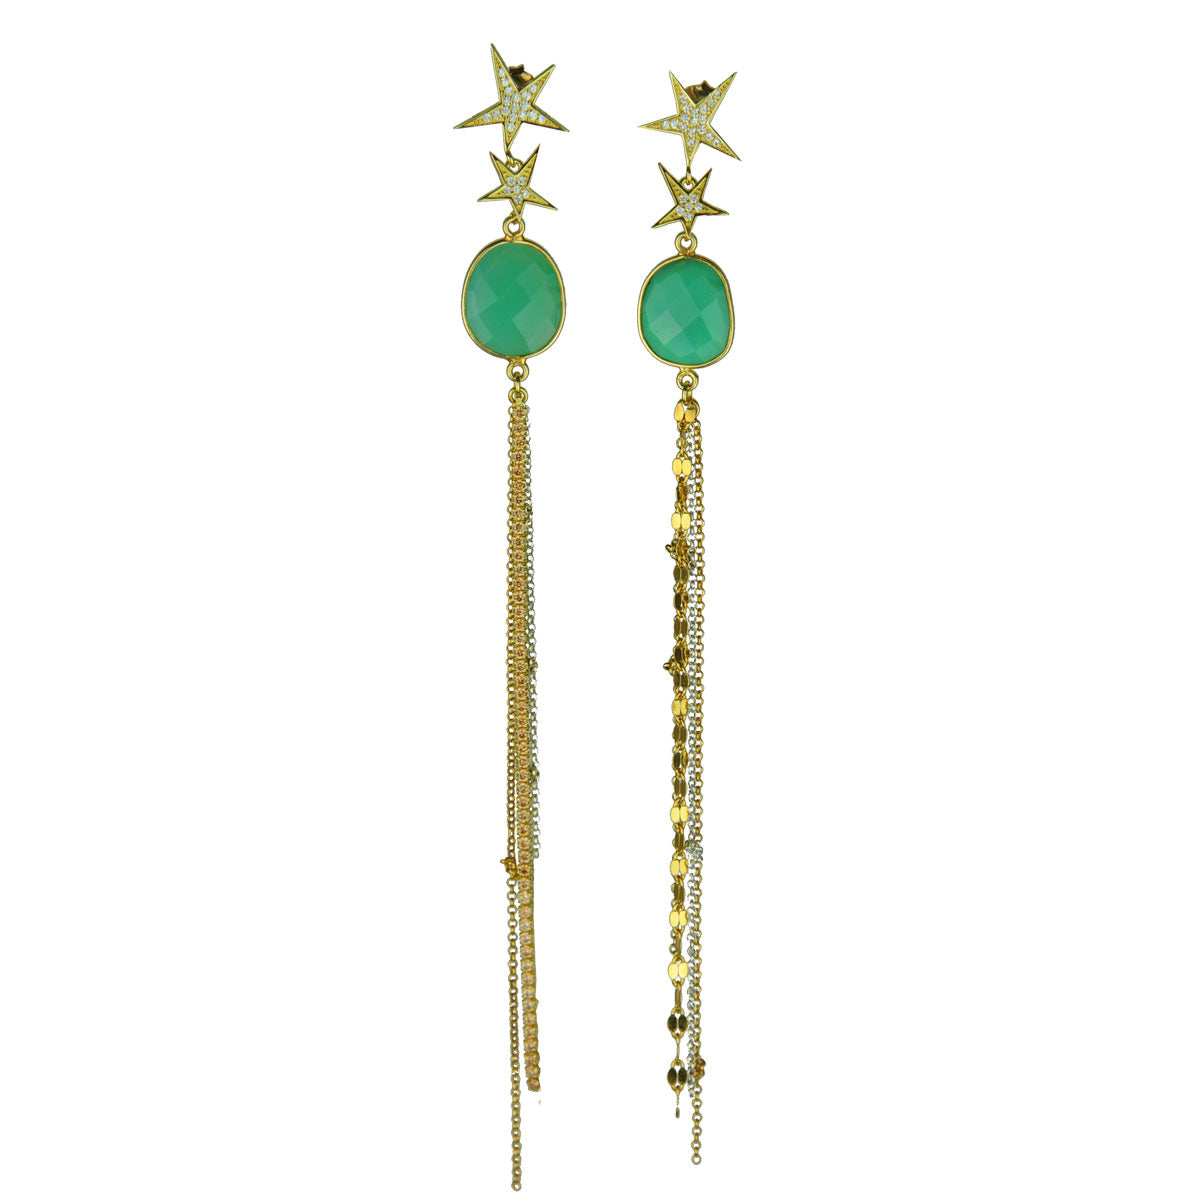 Gold plated 925 silver earrings with chrysoprase and tassels katerina psoma